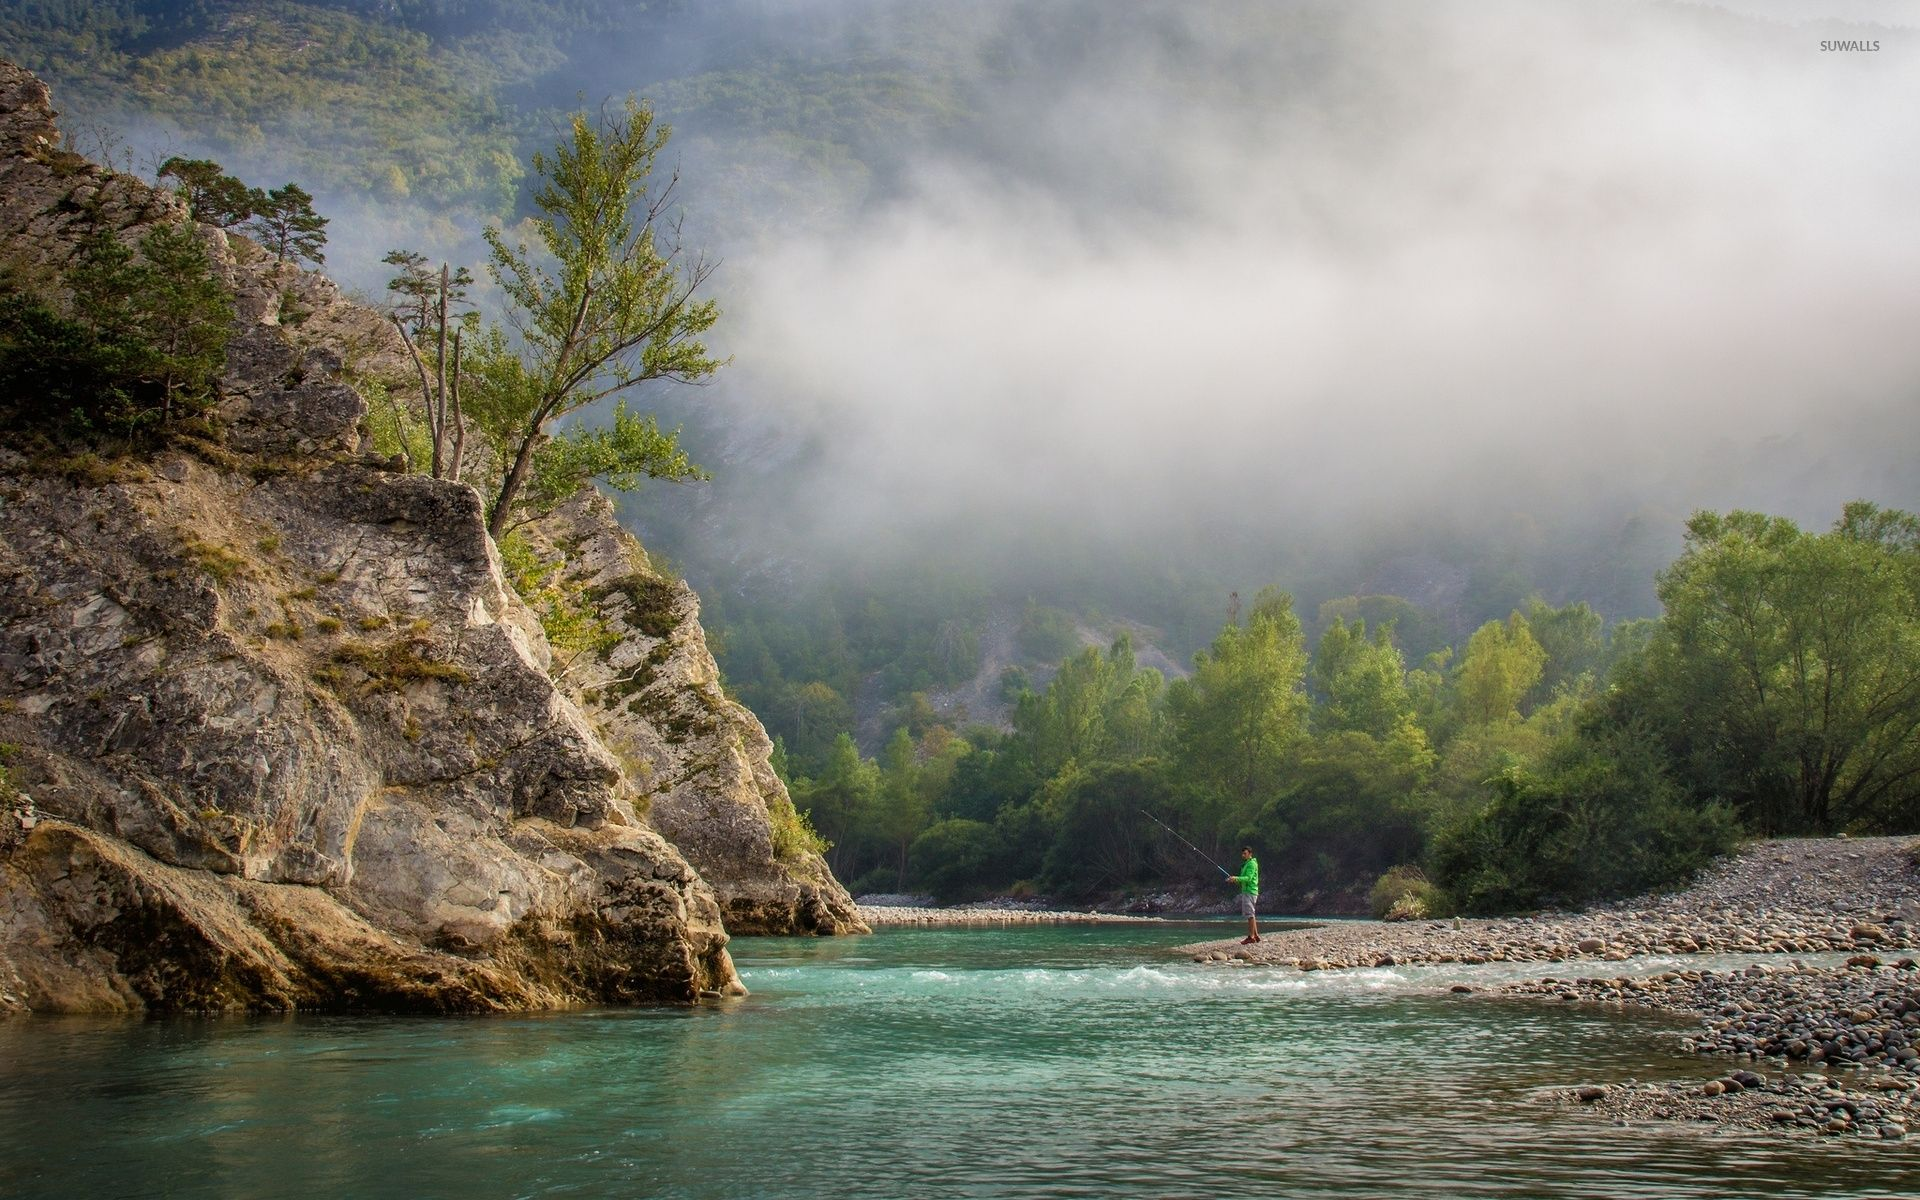 Fishing near the foggy forest mountain